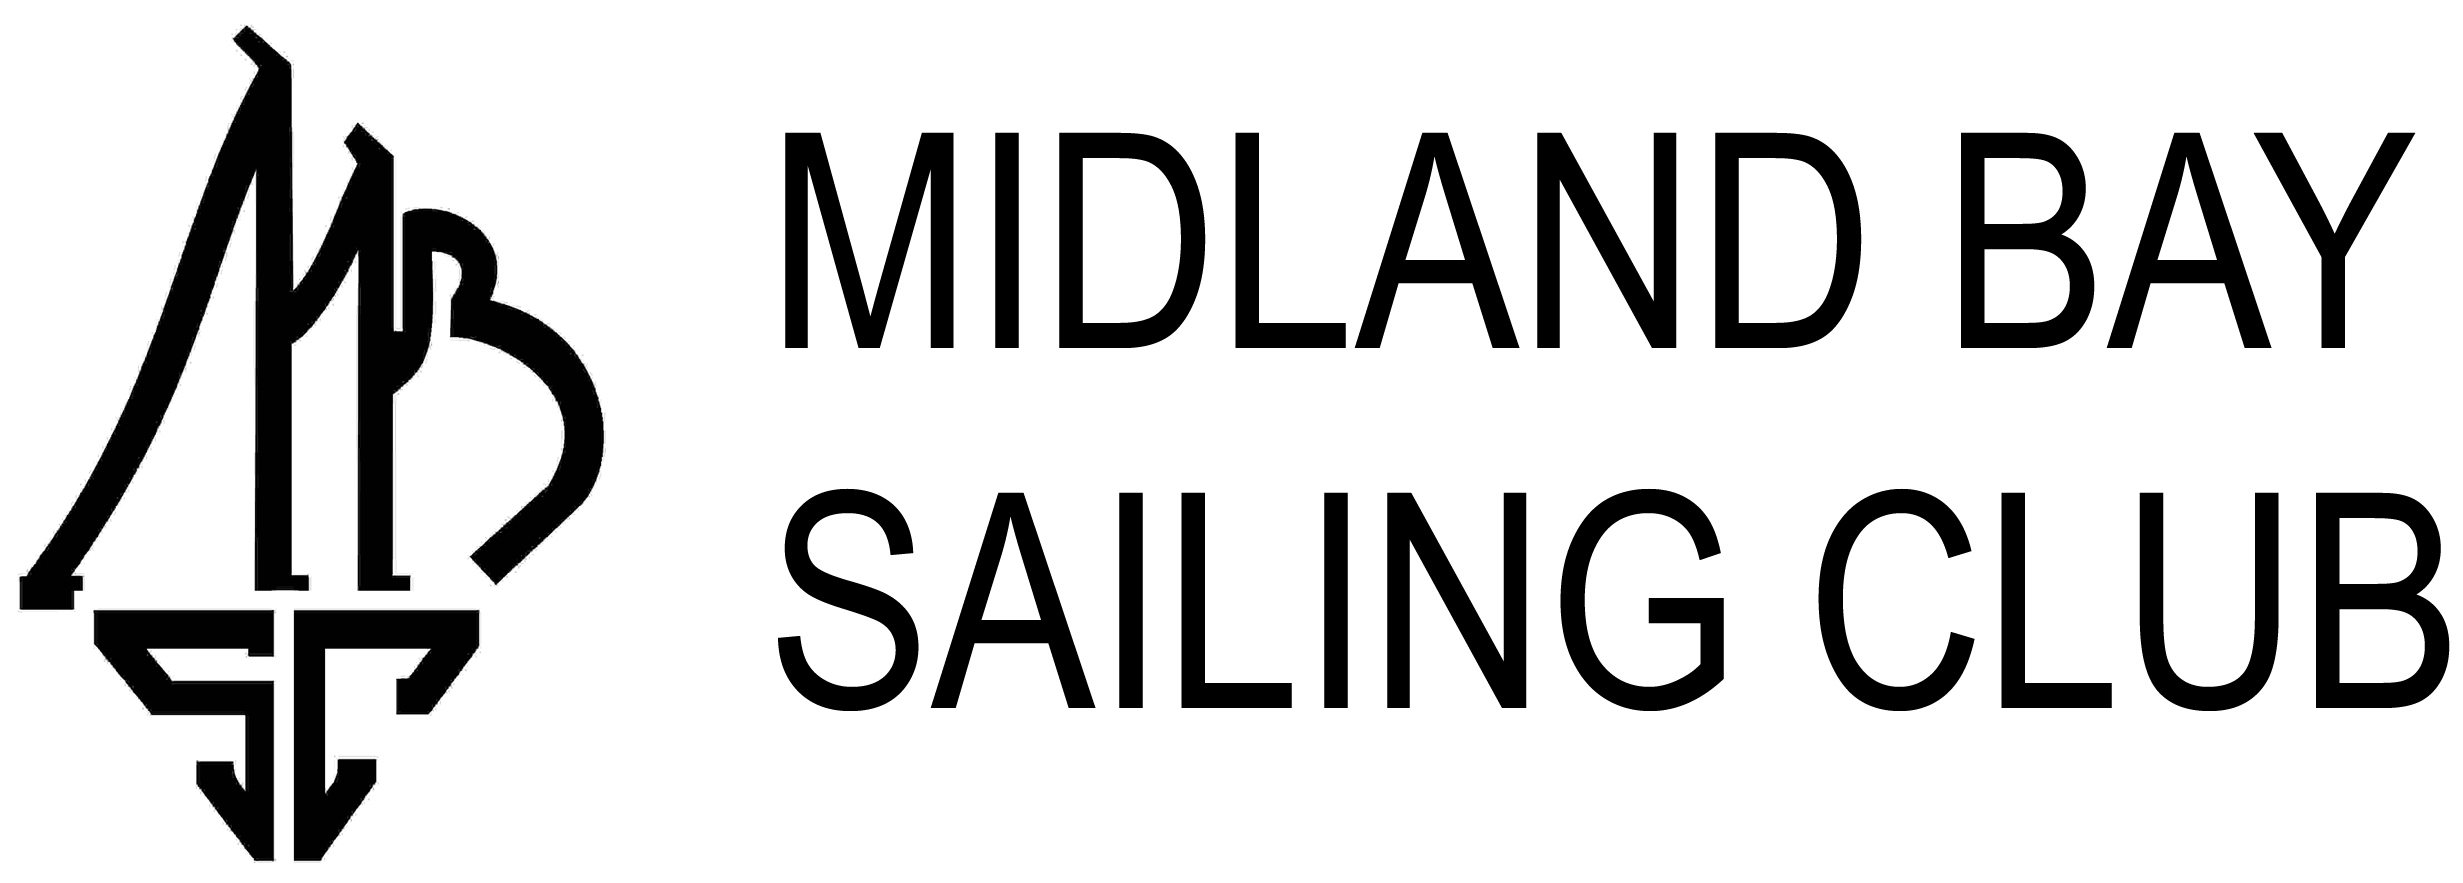 Midland Bay Sailing Club